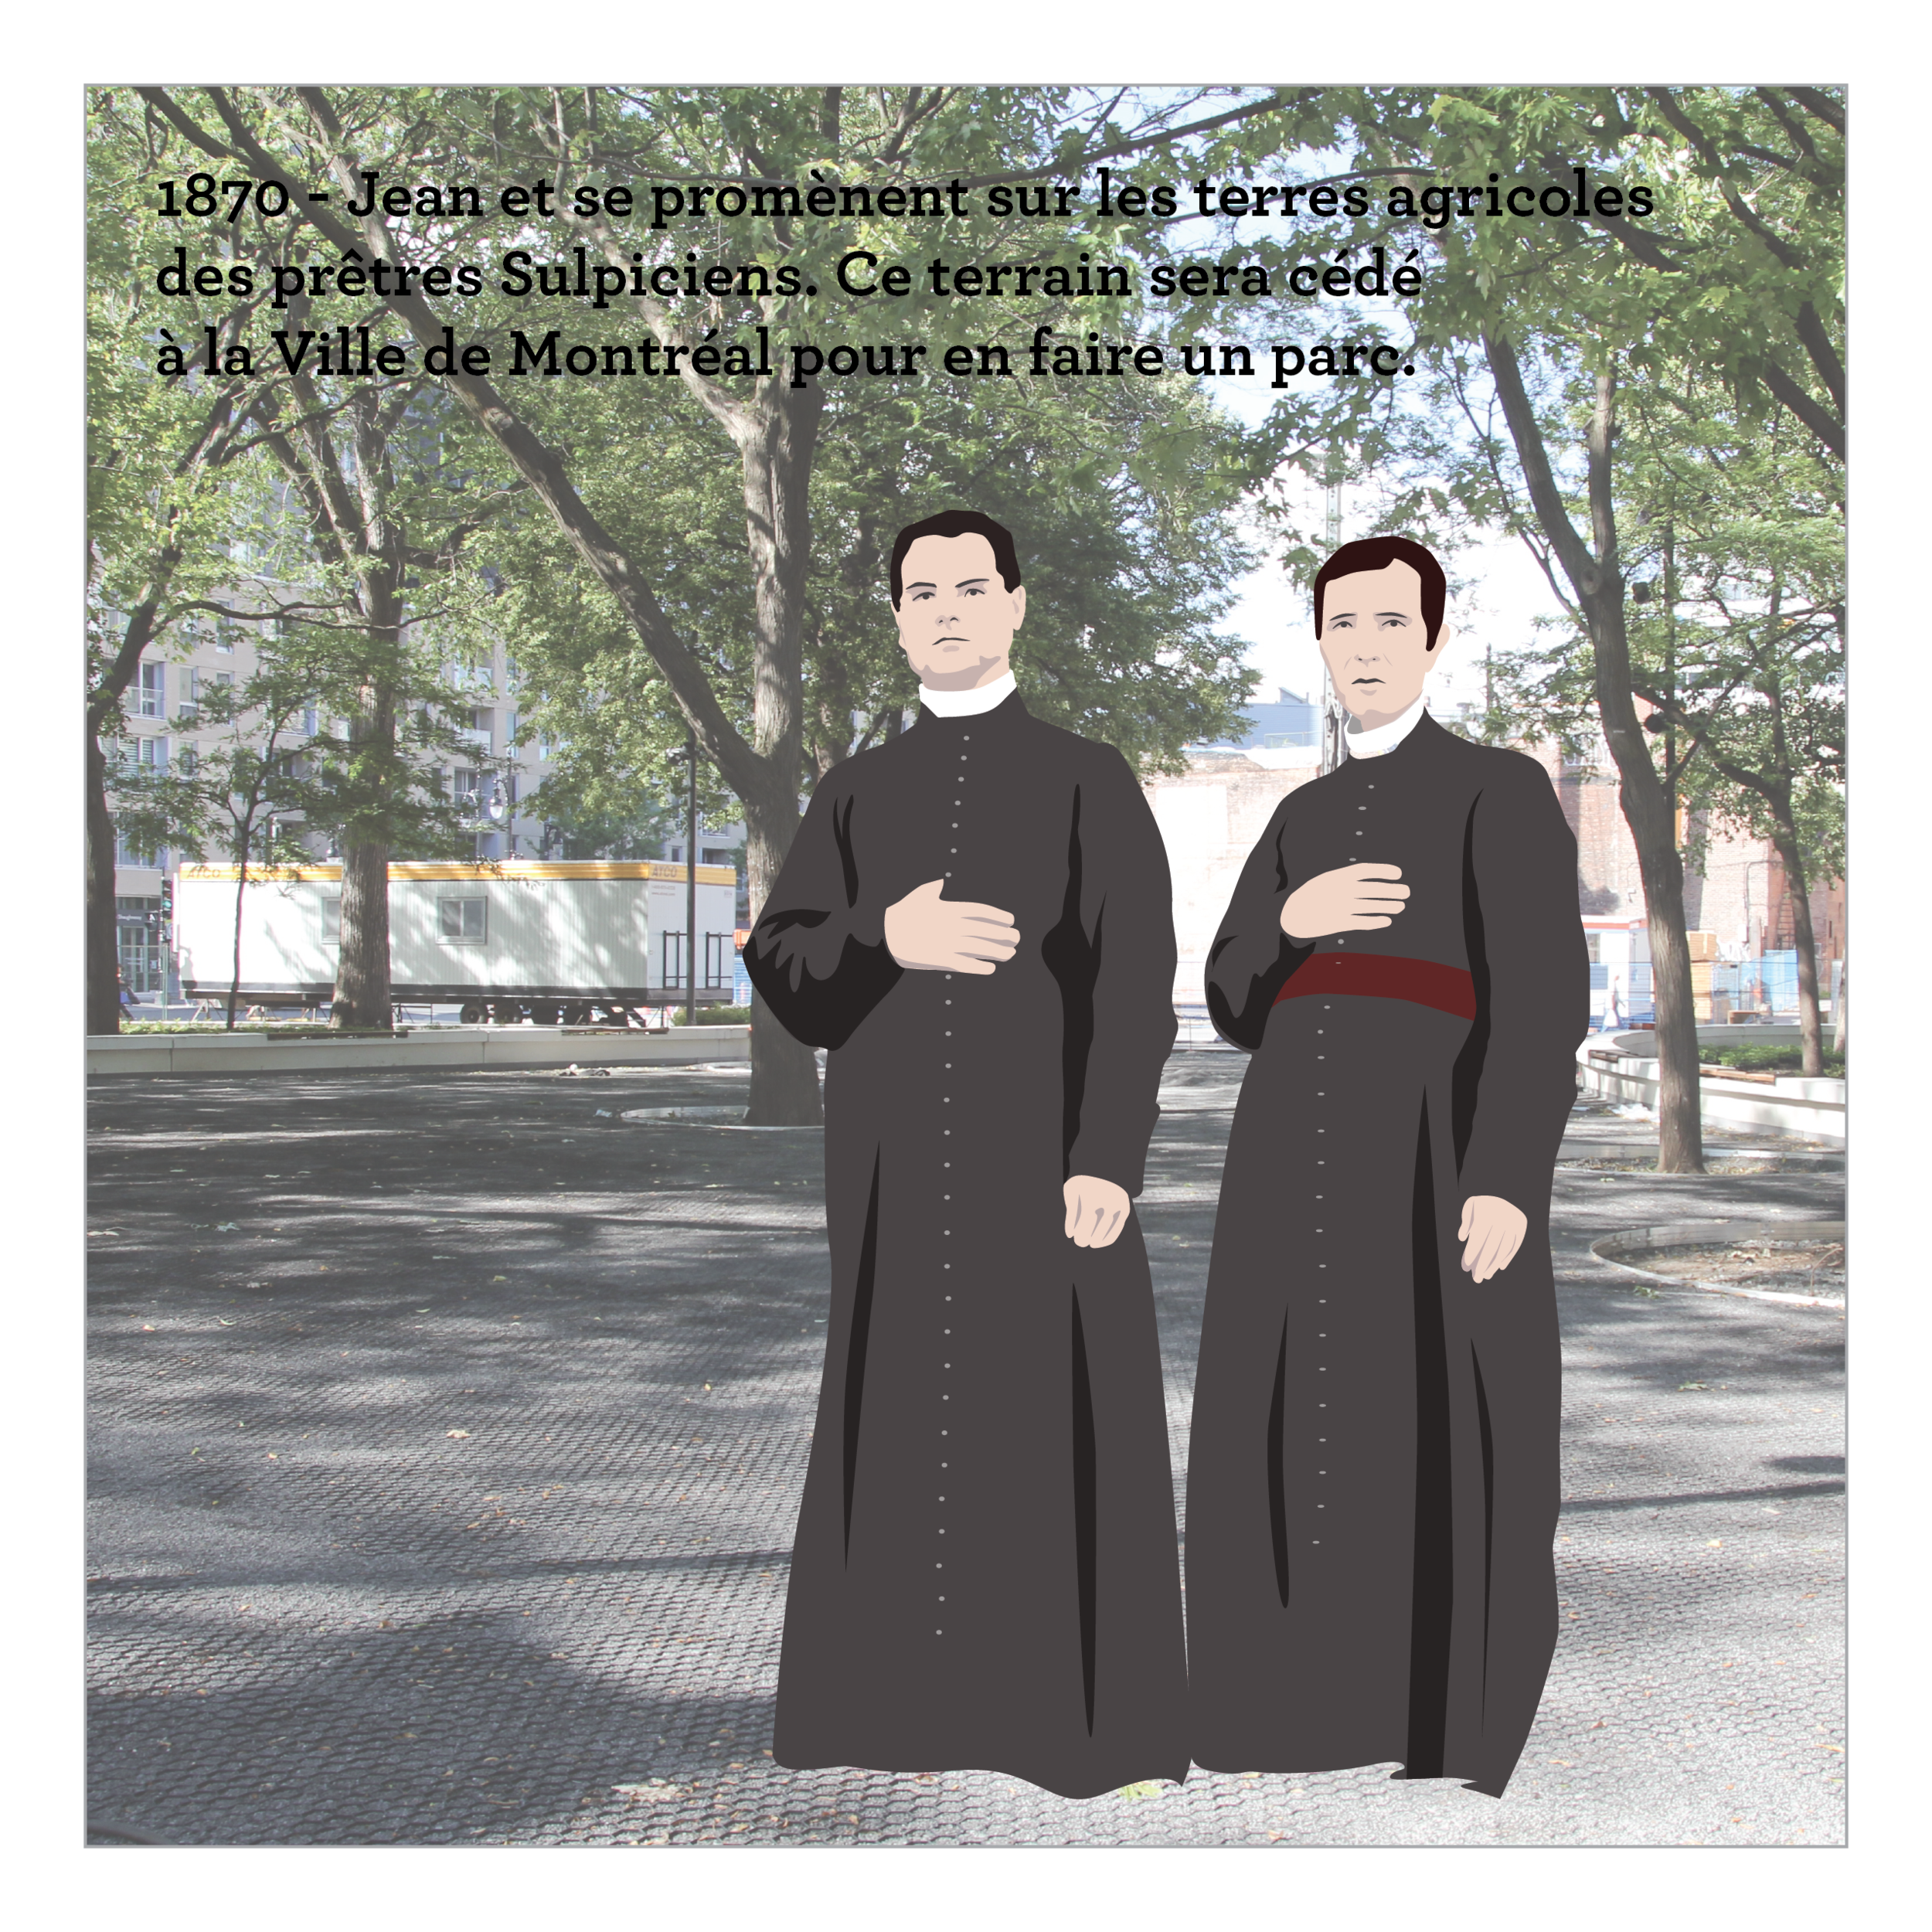 Cabot-defileStoryboardVueVisionneuse-030715-01.png